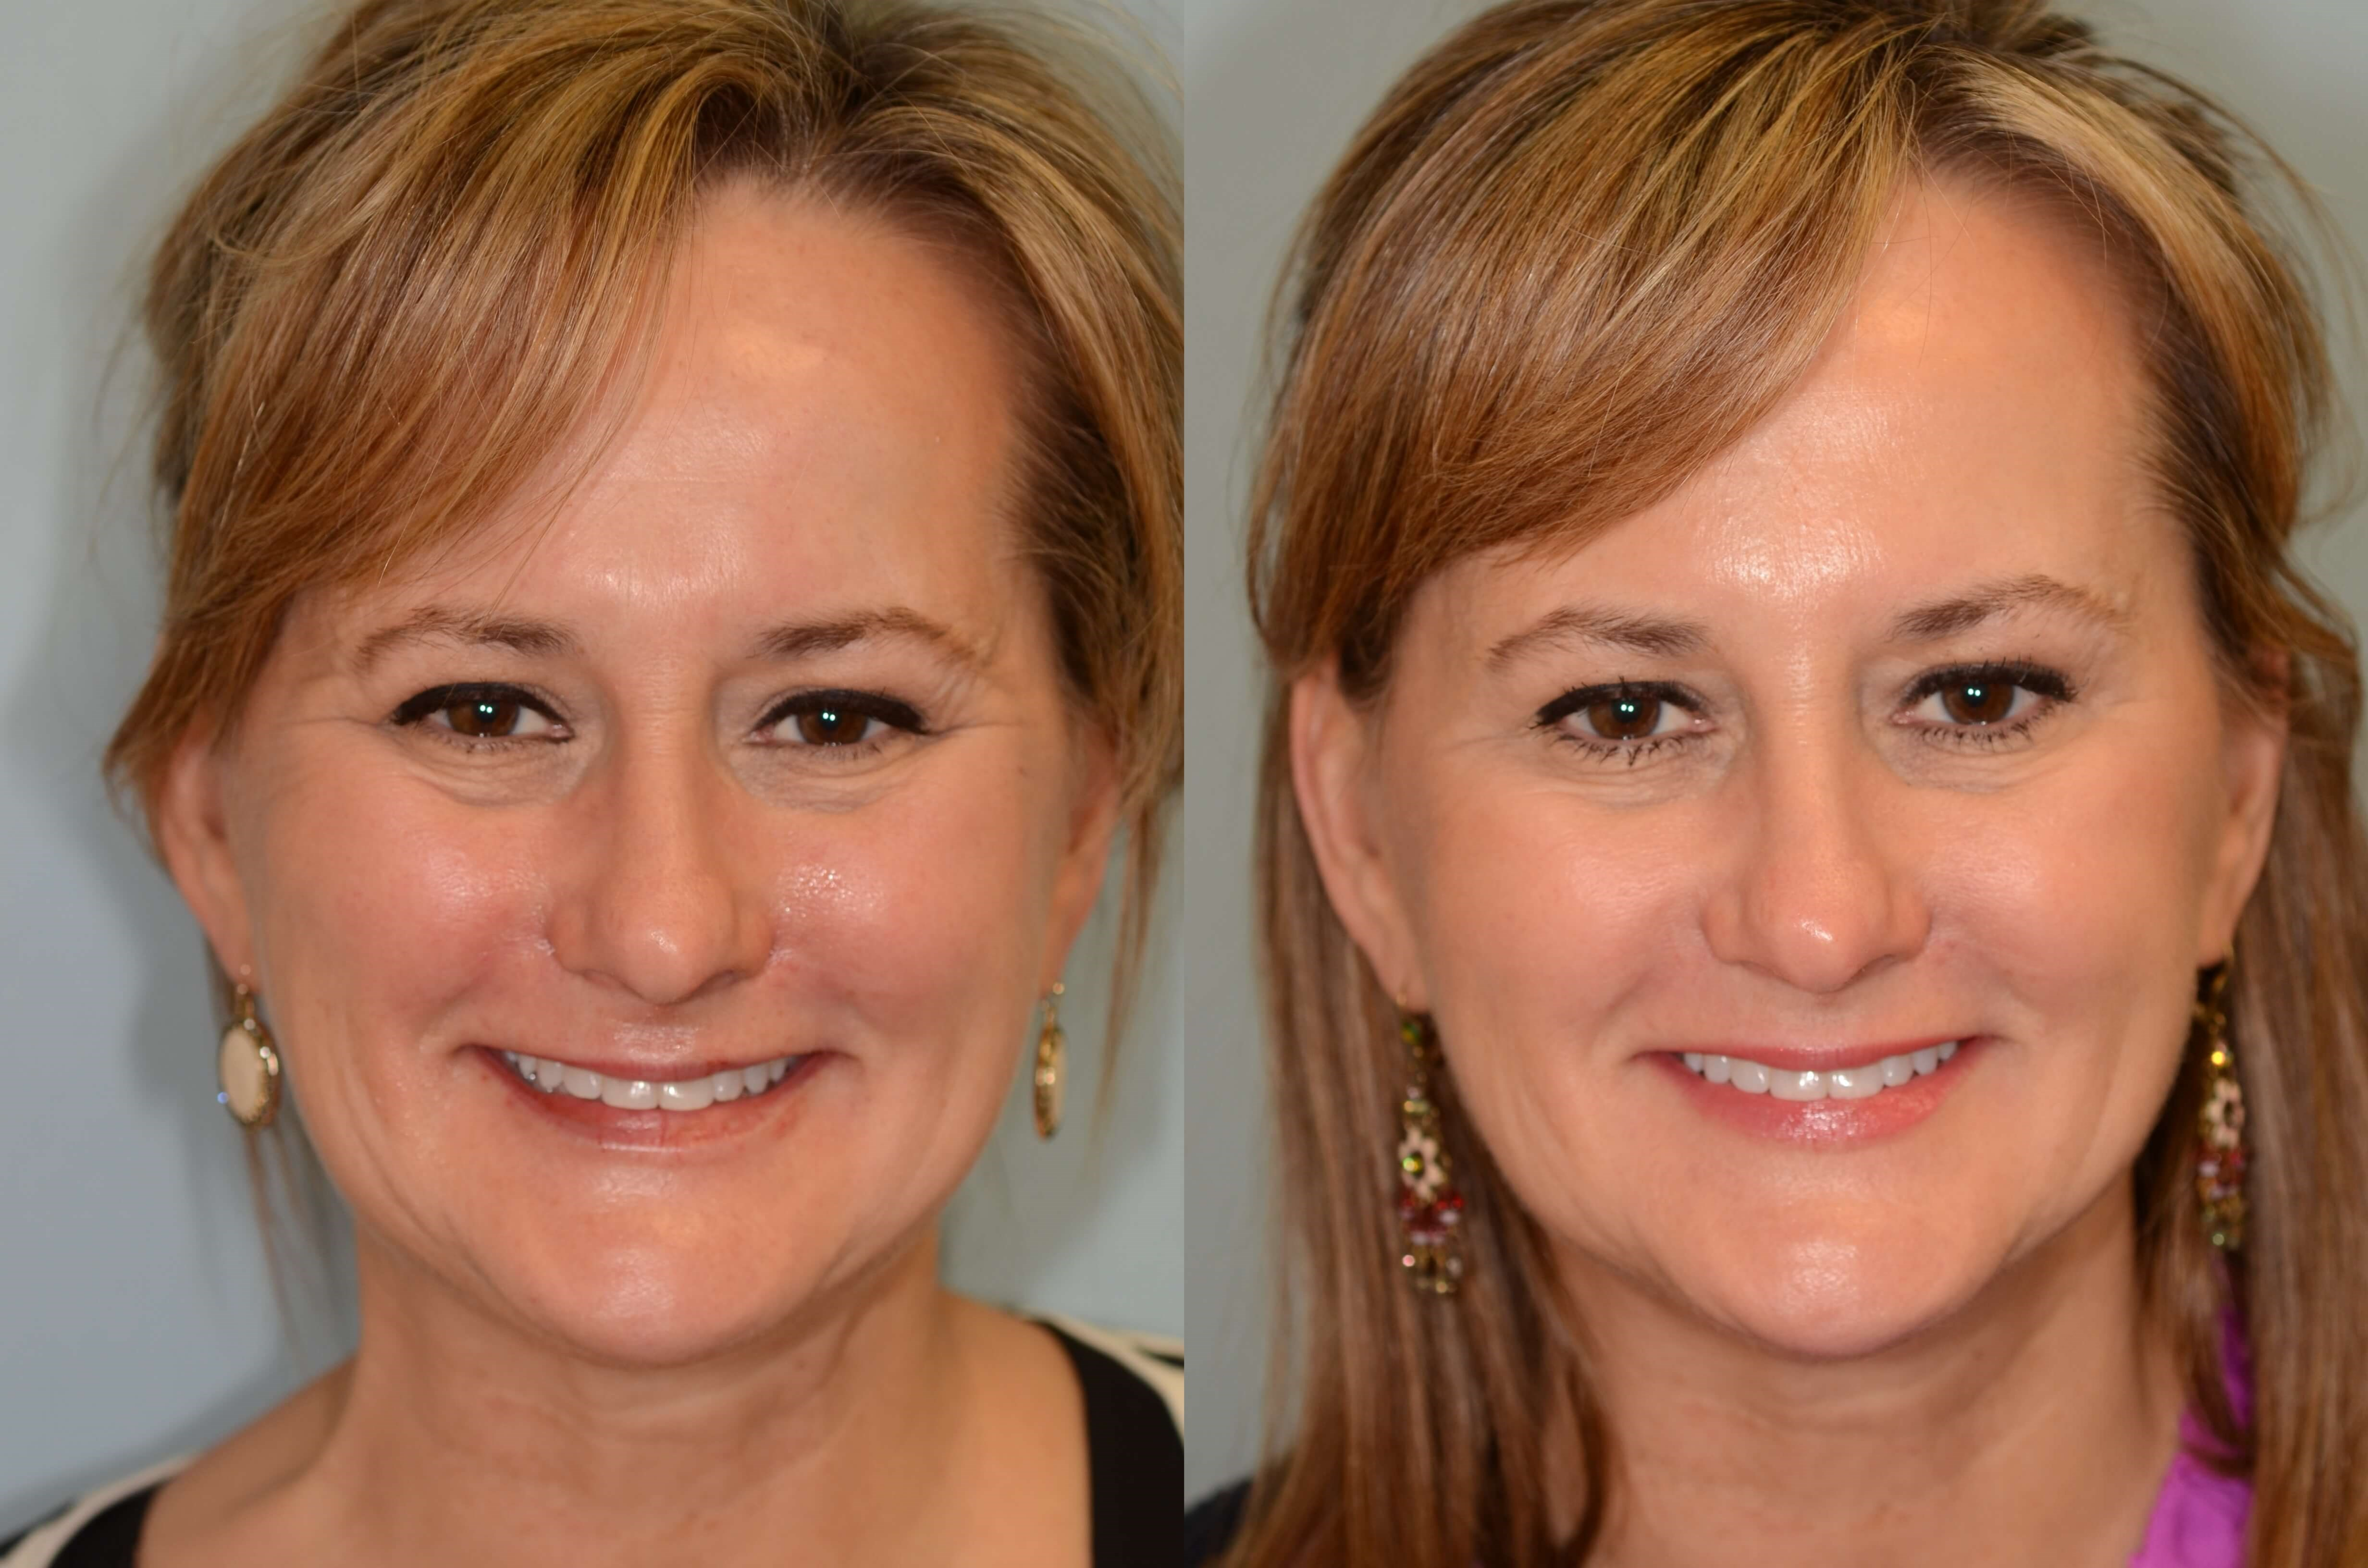 Botox to smooth away wrinkles! Before and After